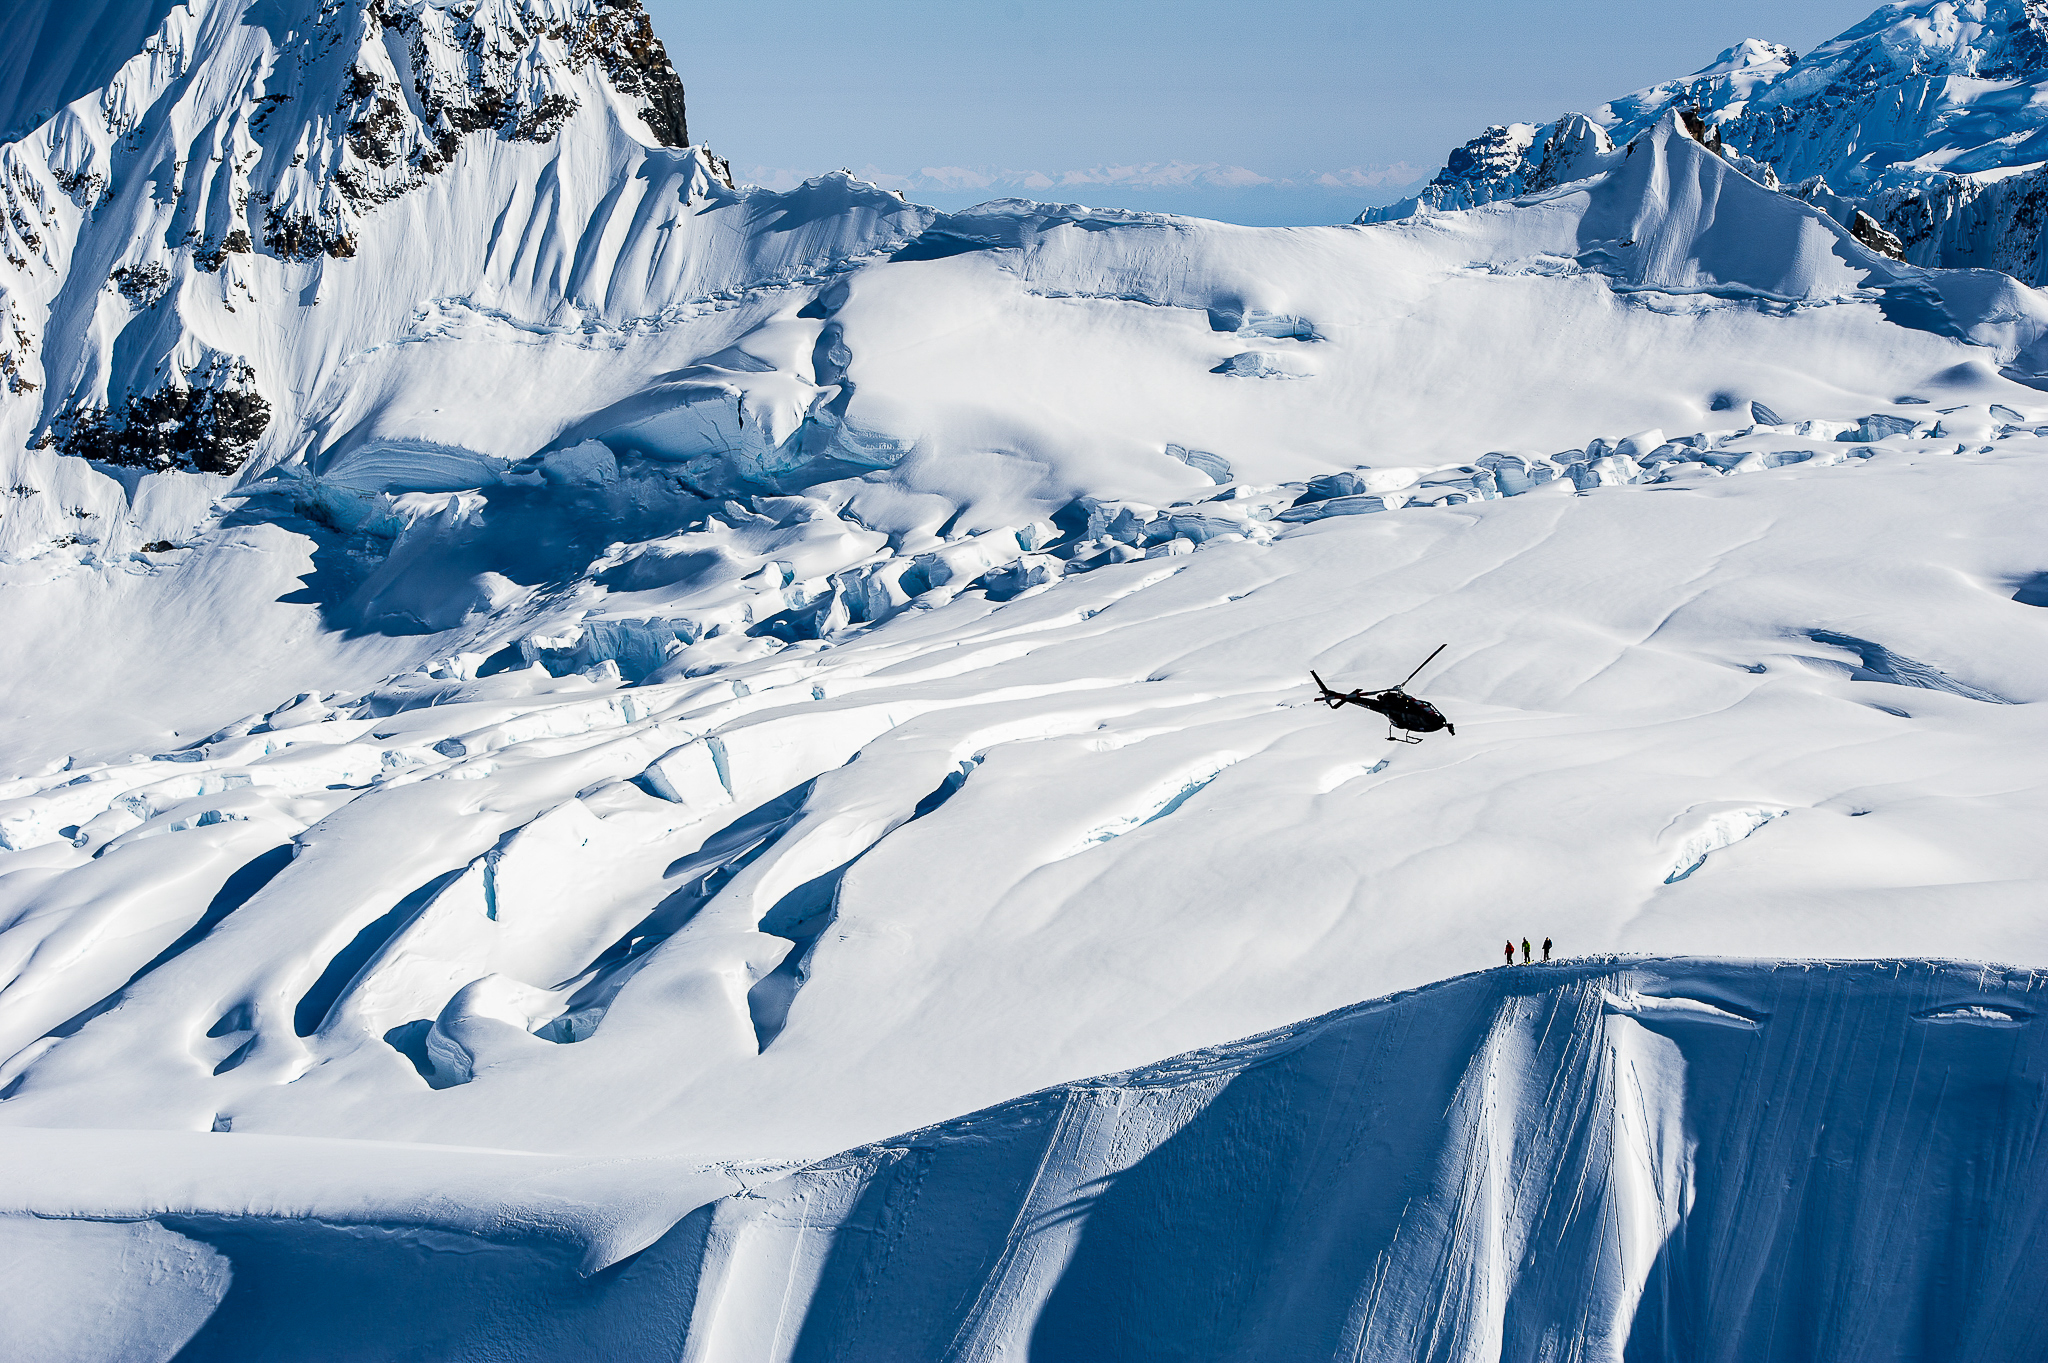 Richard Permin, Cody Townsend and Markus Eder. Tordrillo Mountains, Alaska